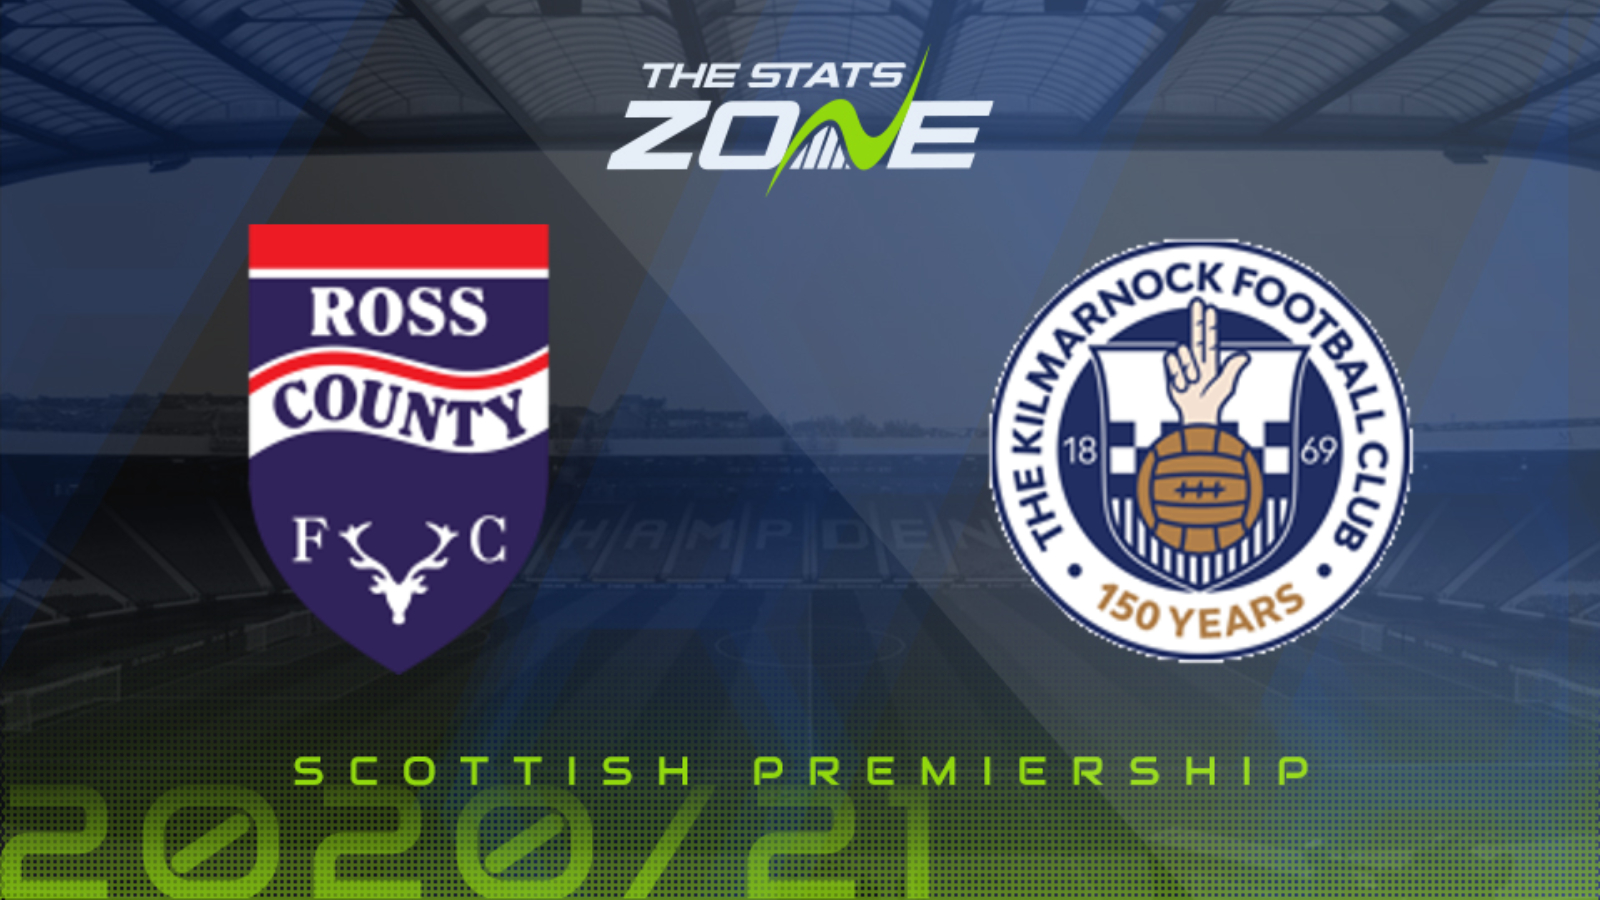 Ross county v kilmarnock betting preview world sports betting branches of chemistry